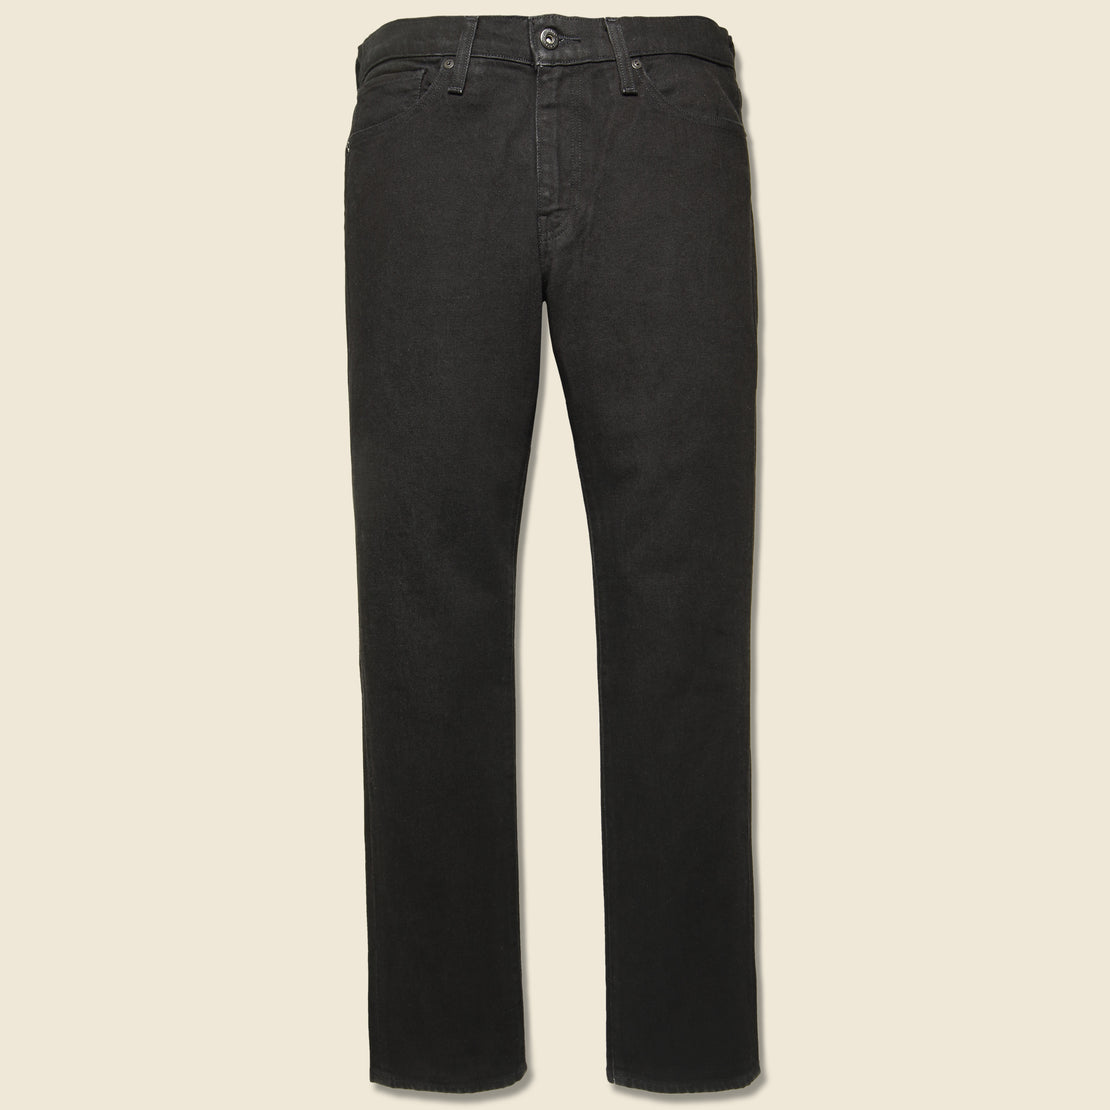 Levis Made & Crafted 511 Slim Fit Jean - Black Rinse